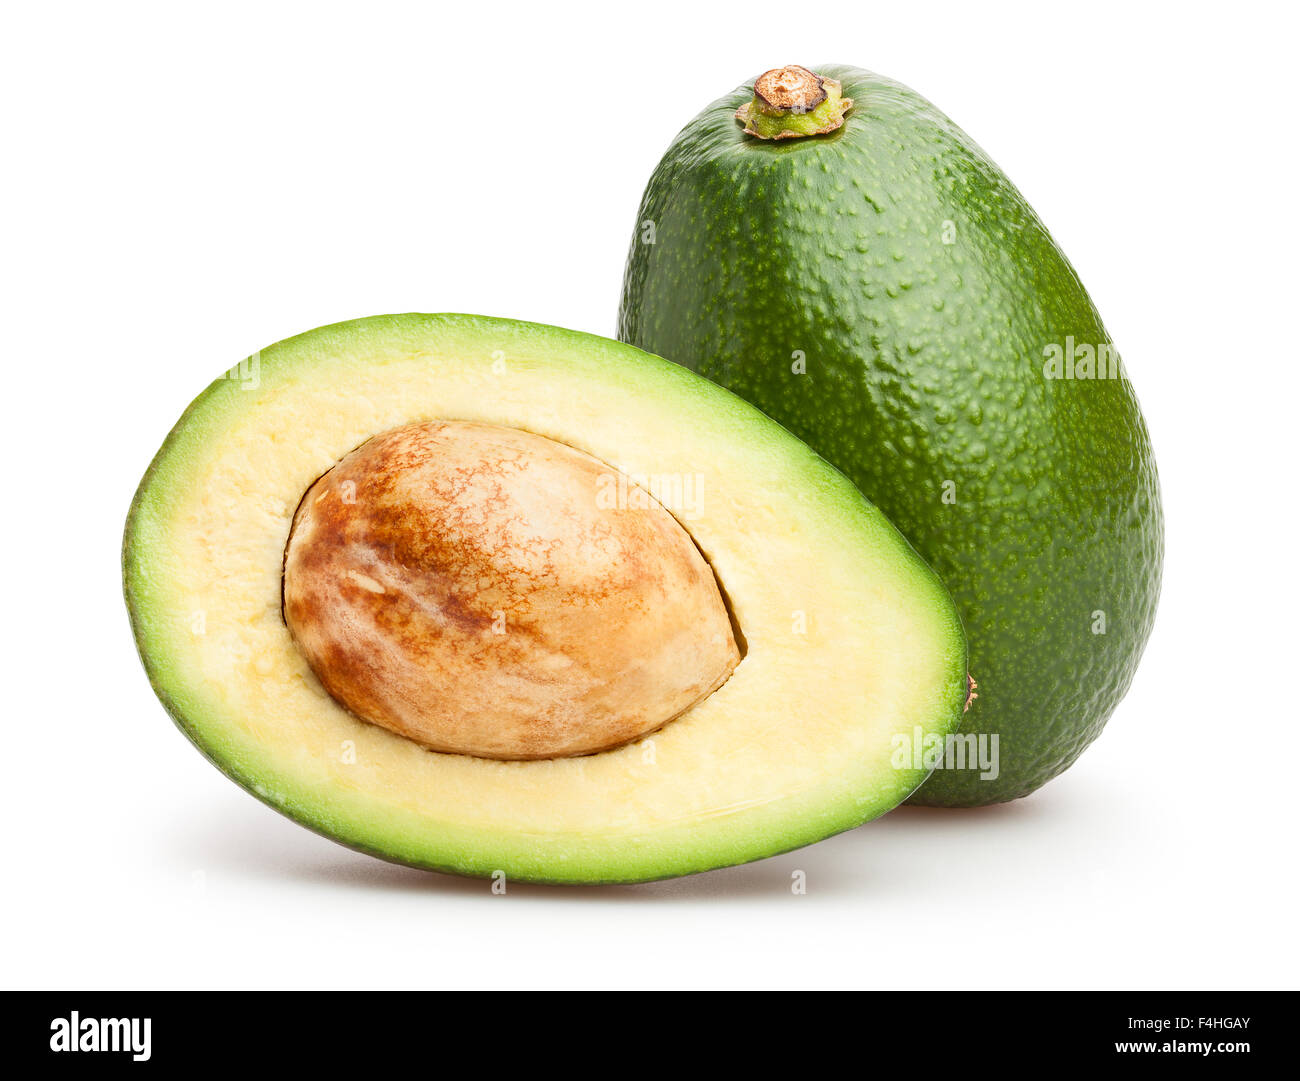 avocado isolated - Stock Image